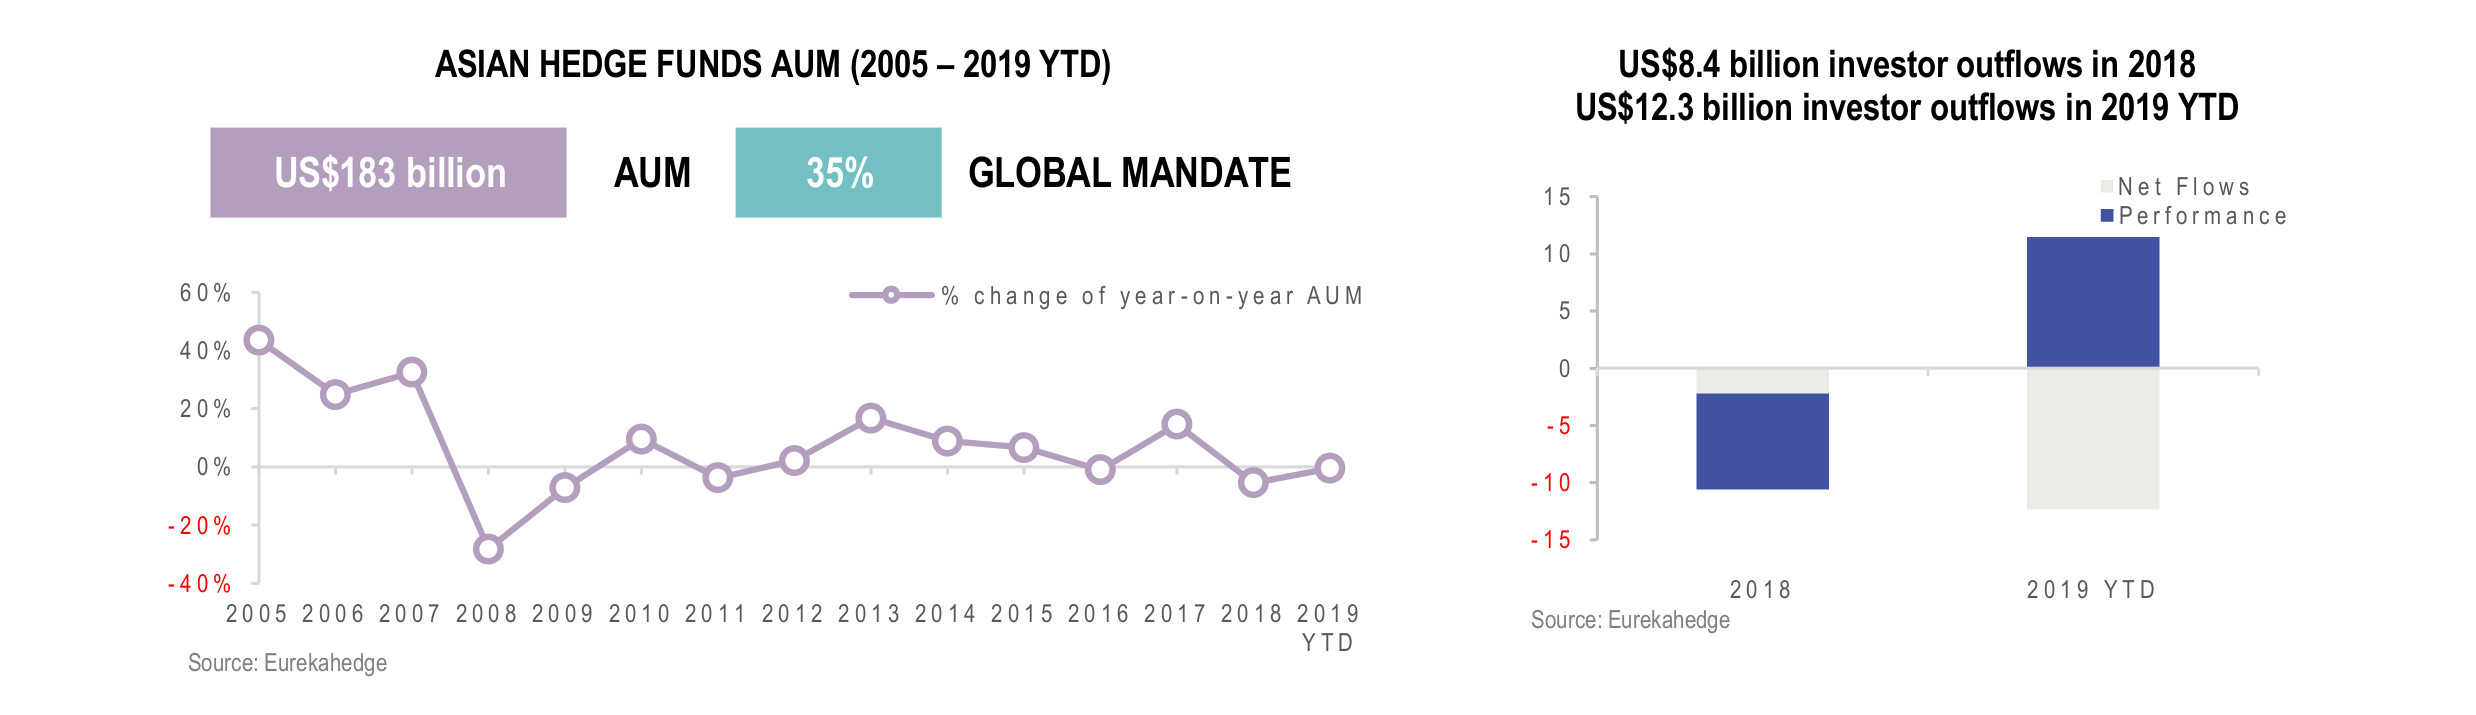 Asian Hedge Funds Infographic January 2020 - AUM